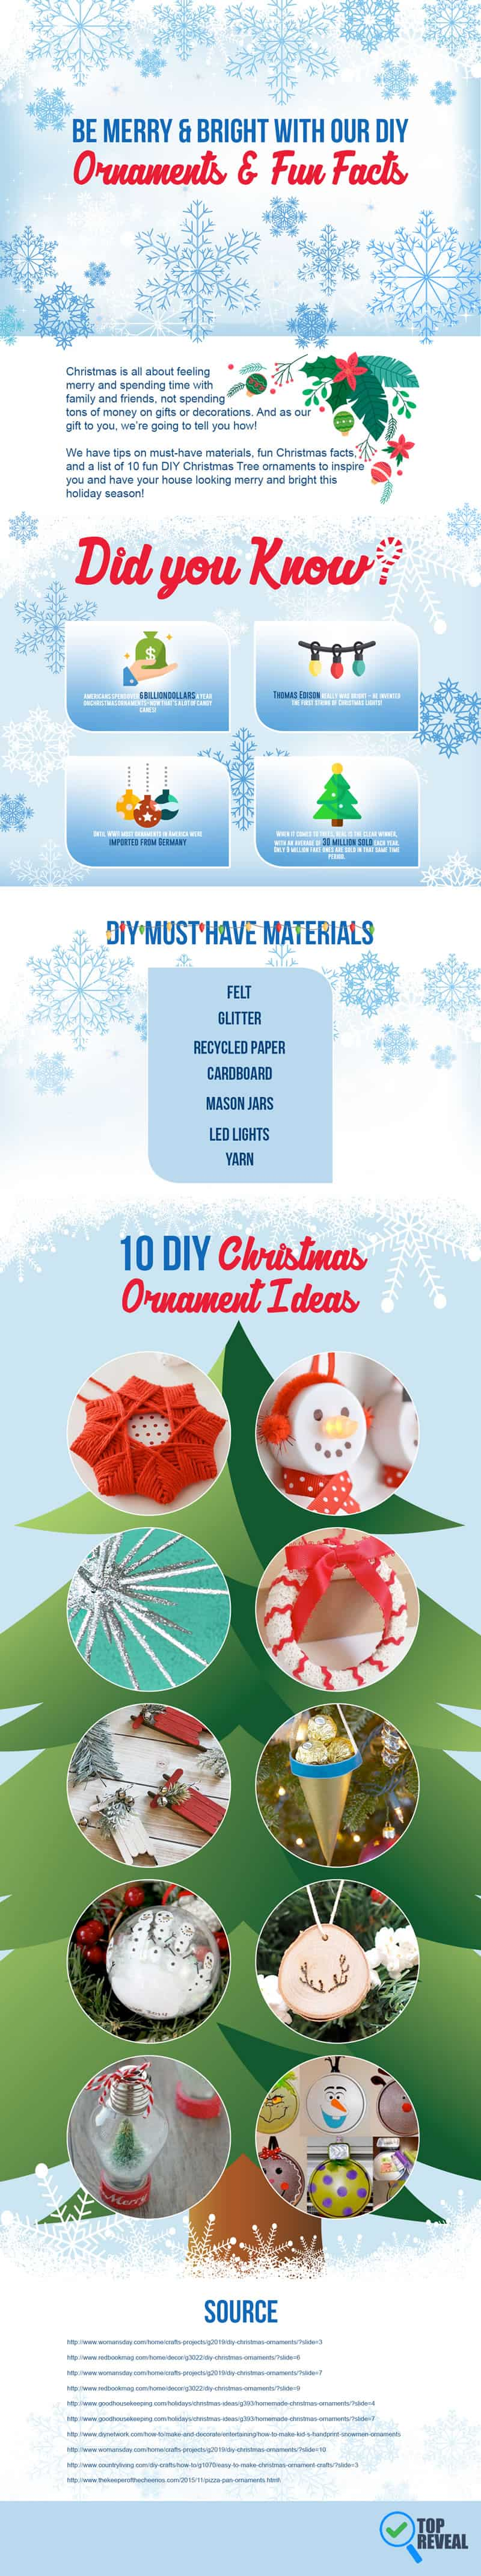 DIY Christmas Ornament Ideas Infographic